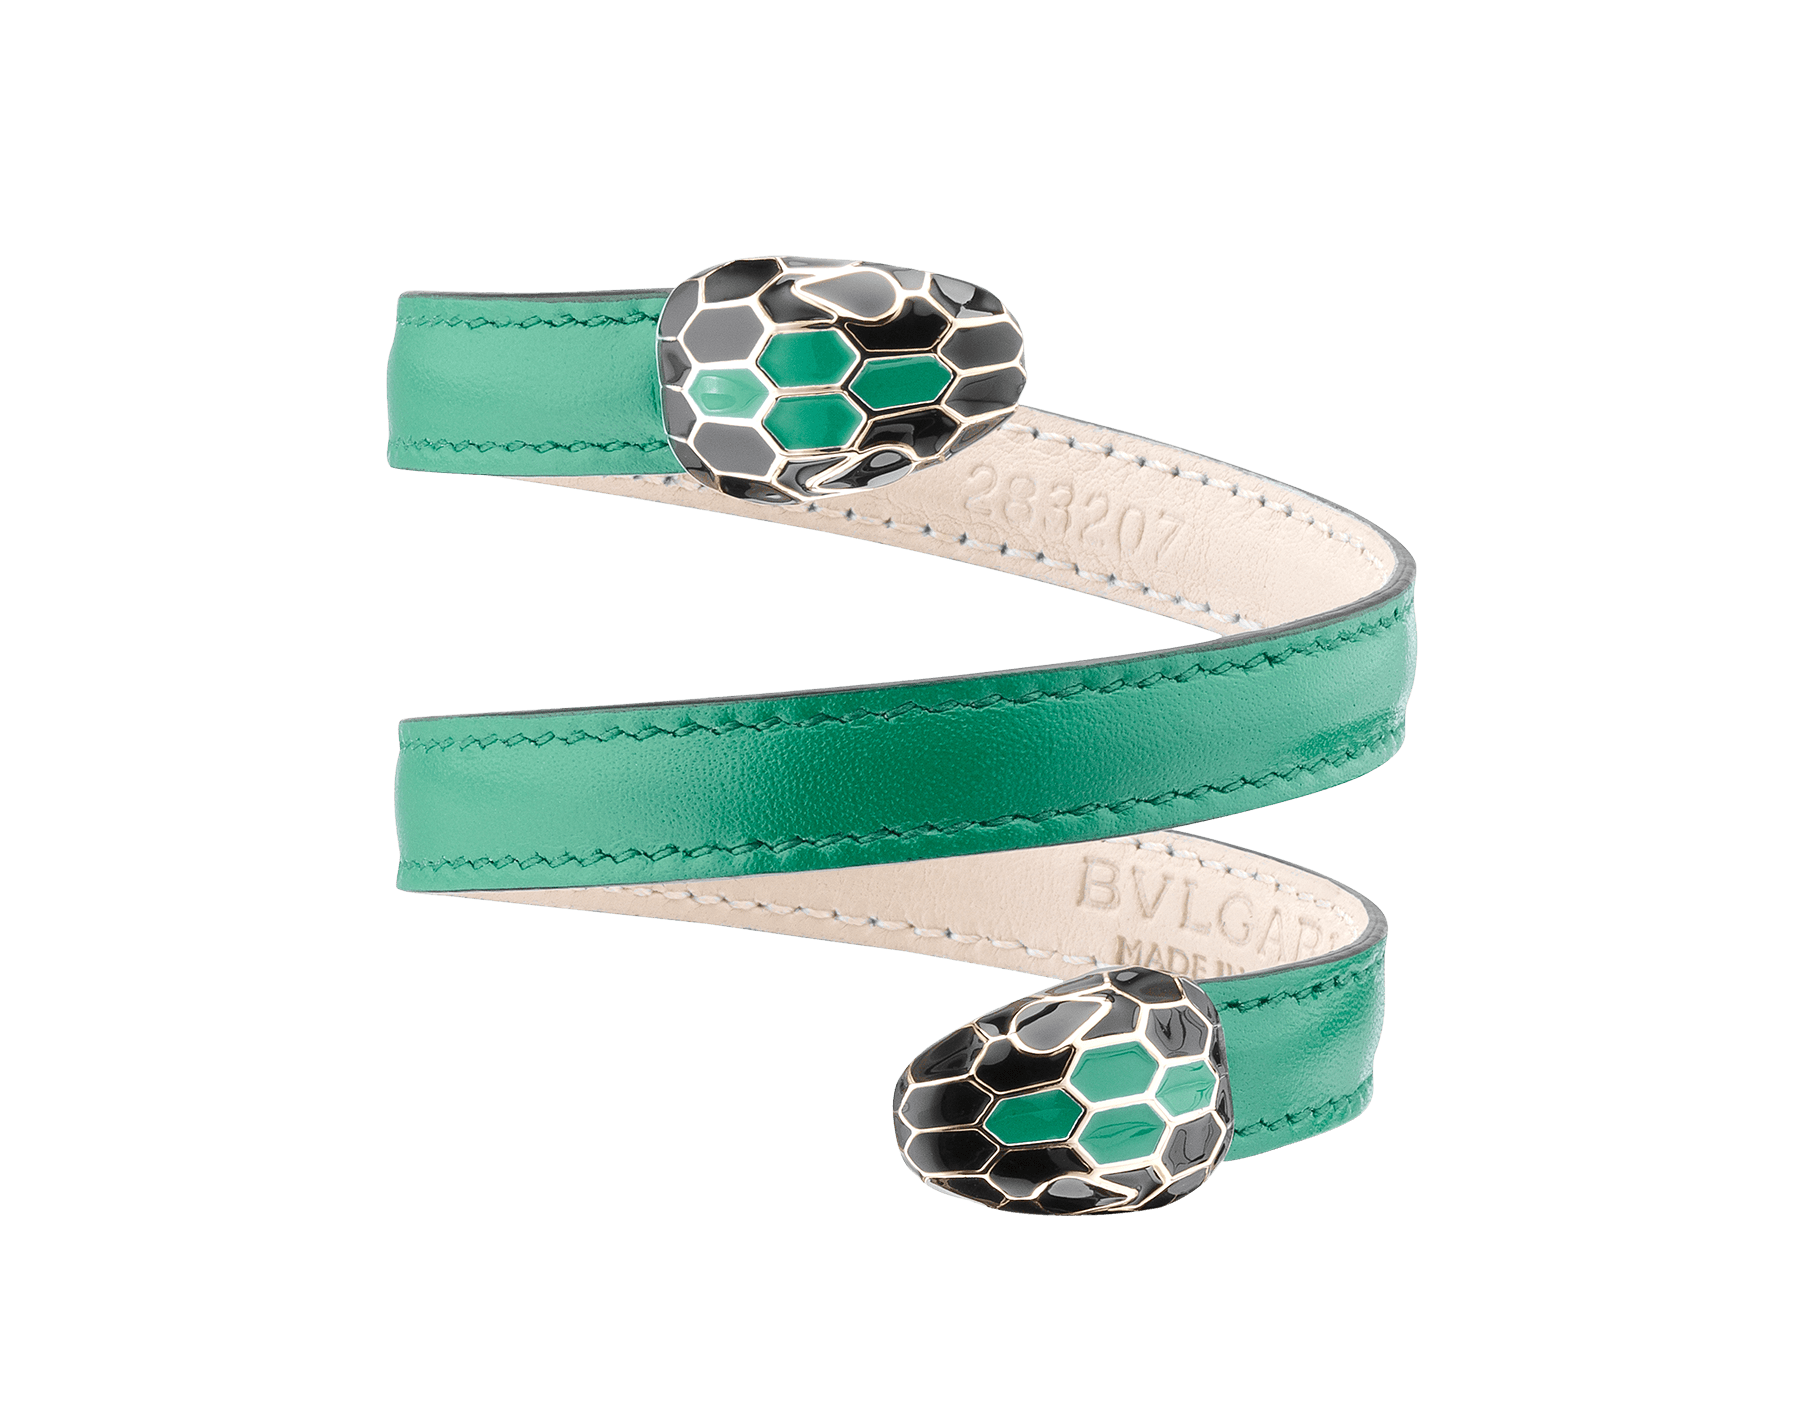 Multi-coiled rigid bracelet in emerald green calf leather with brass light gold plated hardware. Double tempting Serpenti head finished in black and tone on tone enamel. Cleopatra-CL-EG image 1